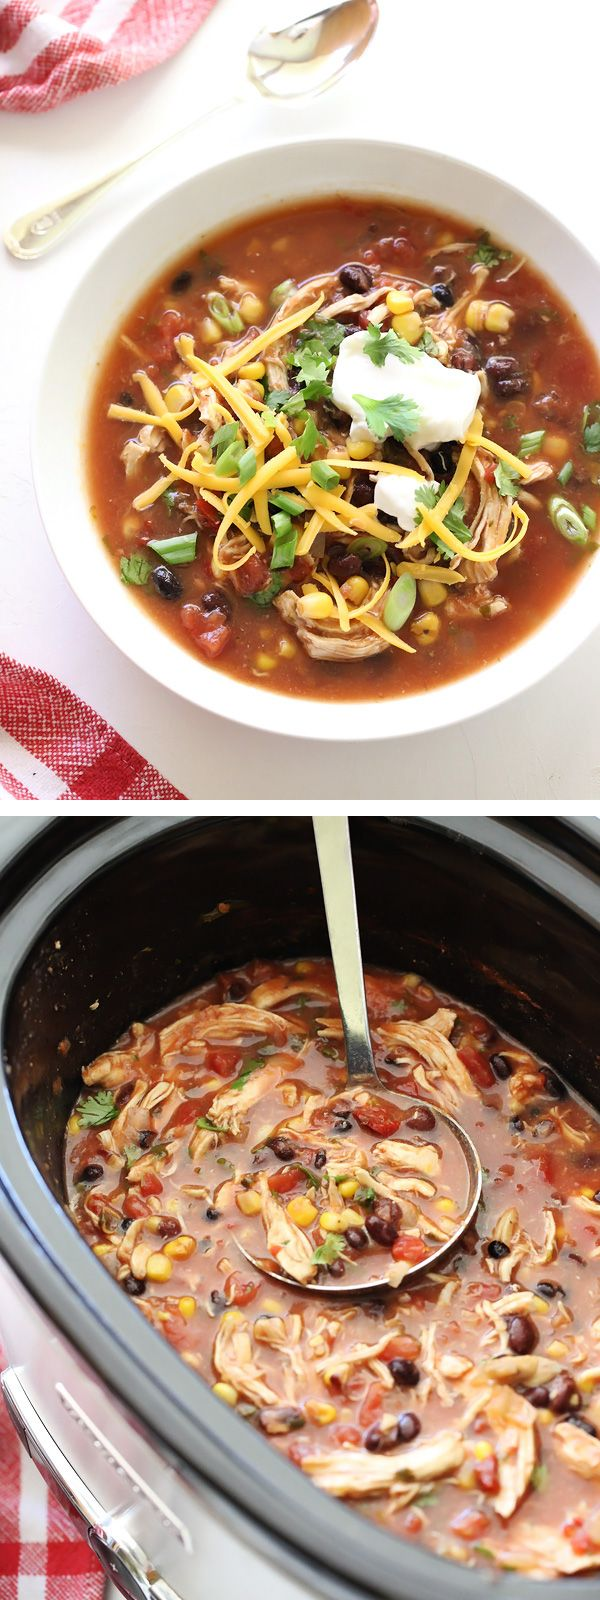 This recipe is a shining example of the approachable recipes with a healthy twist you'll find in The @Skinnytaste Cookbook. In fact this slow cooker soup was so family friendly my daughter ate it for 3 straight meals—at her request!